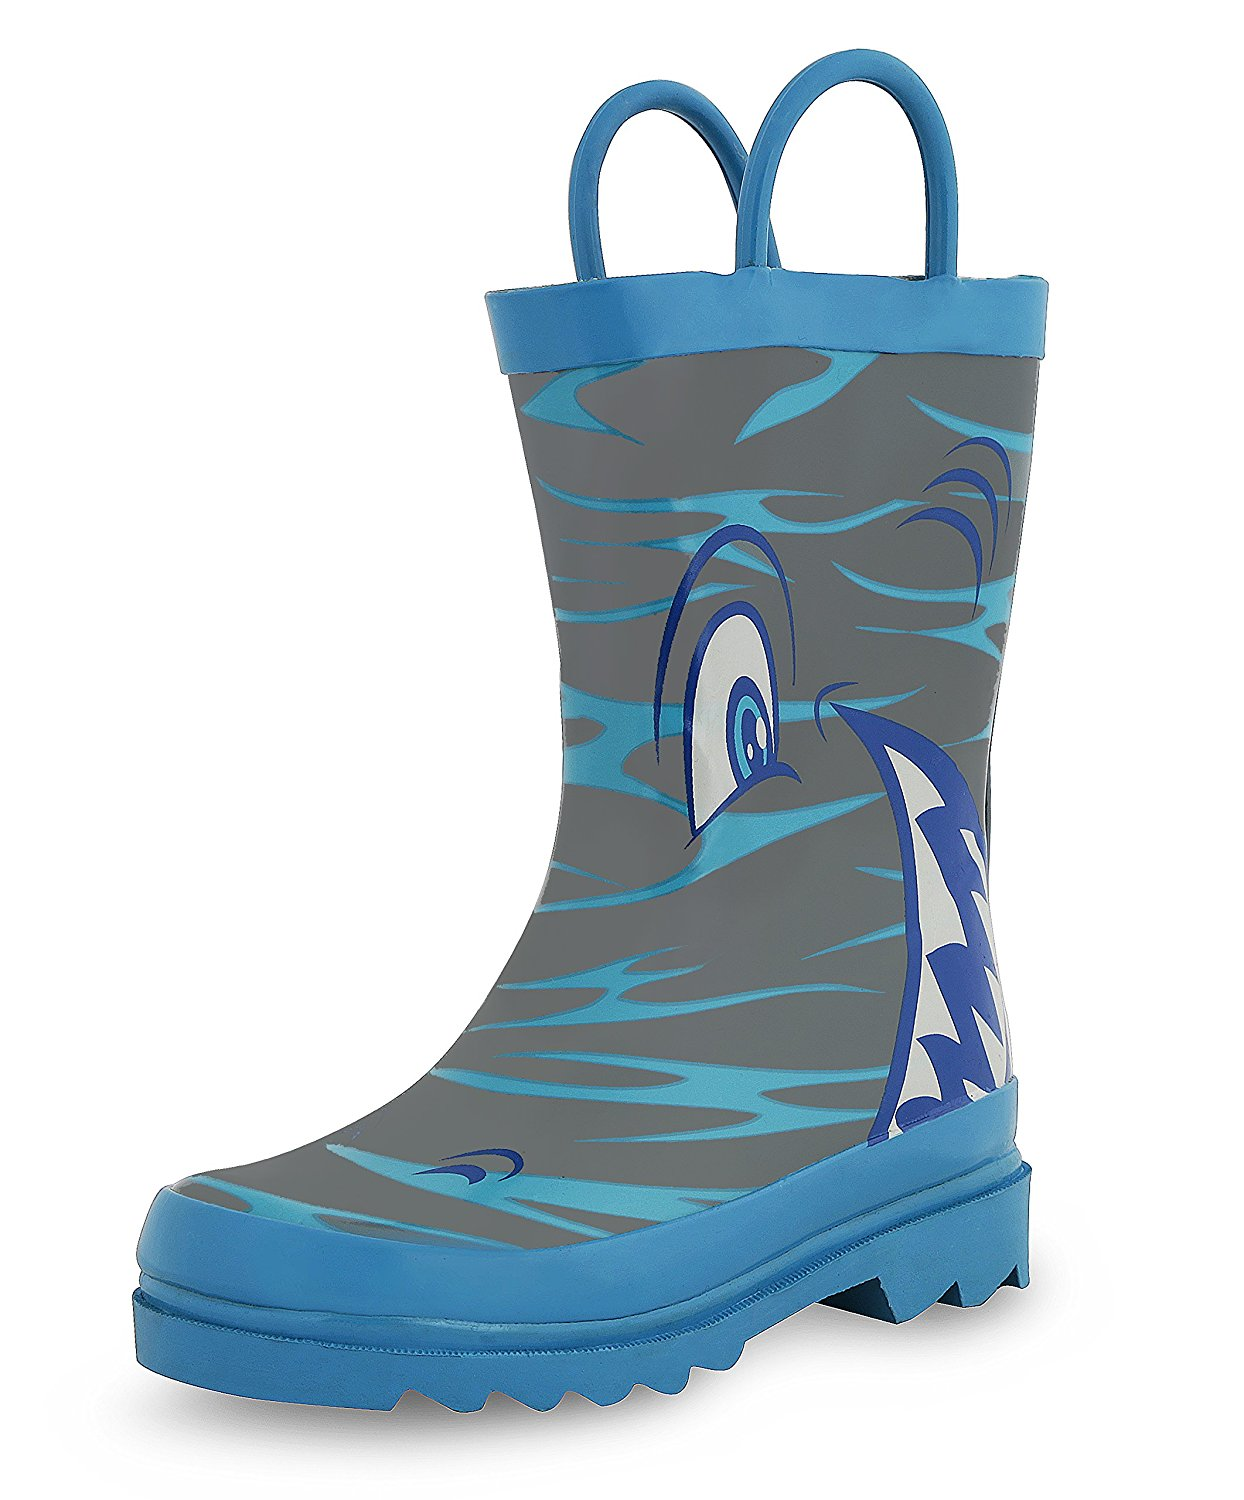 Puddle Play Kids Boys' Shark in the Sea Character Printed Waterproof Easy-On Rubber Rain Boots (Toddler/Little Kids)